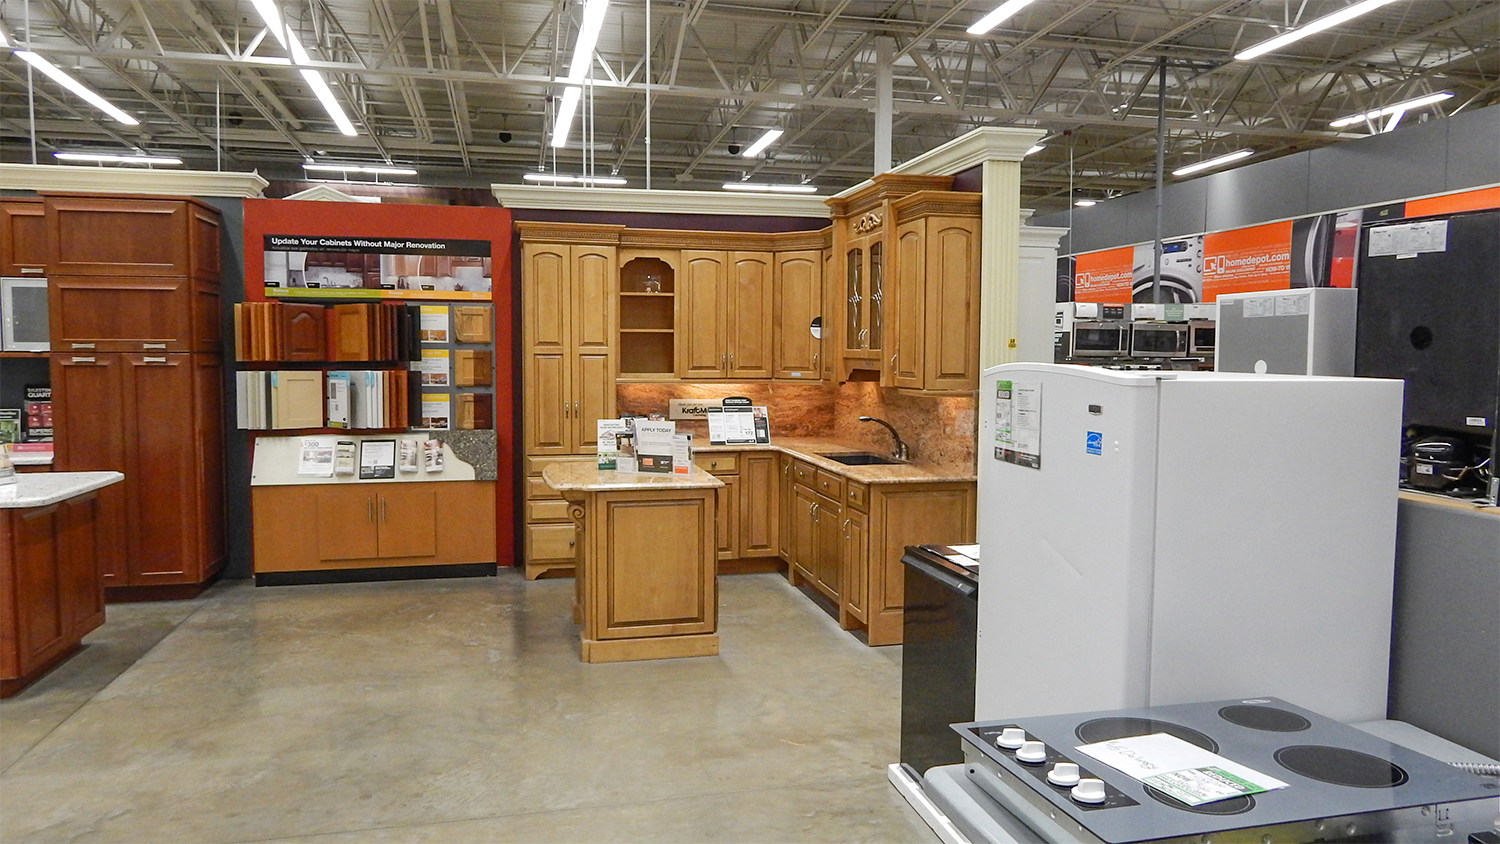 Home depot guarantees to beat competitors price by 10 for Kitchen cabinets home depot